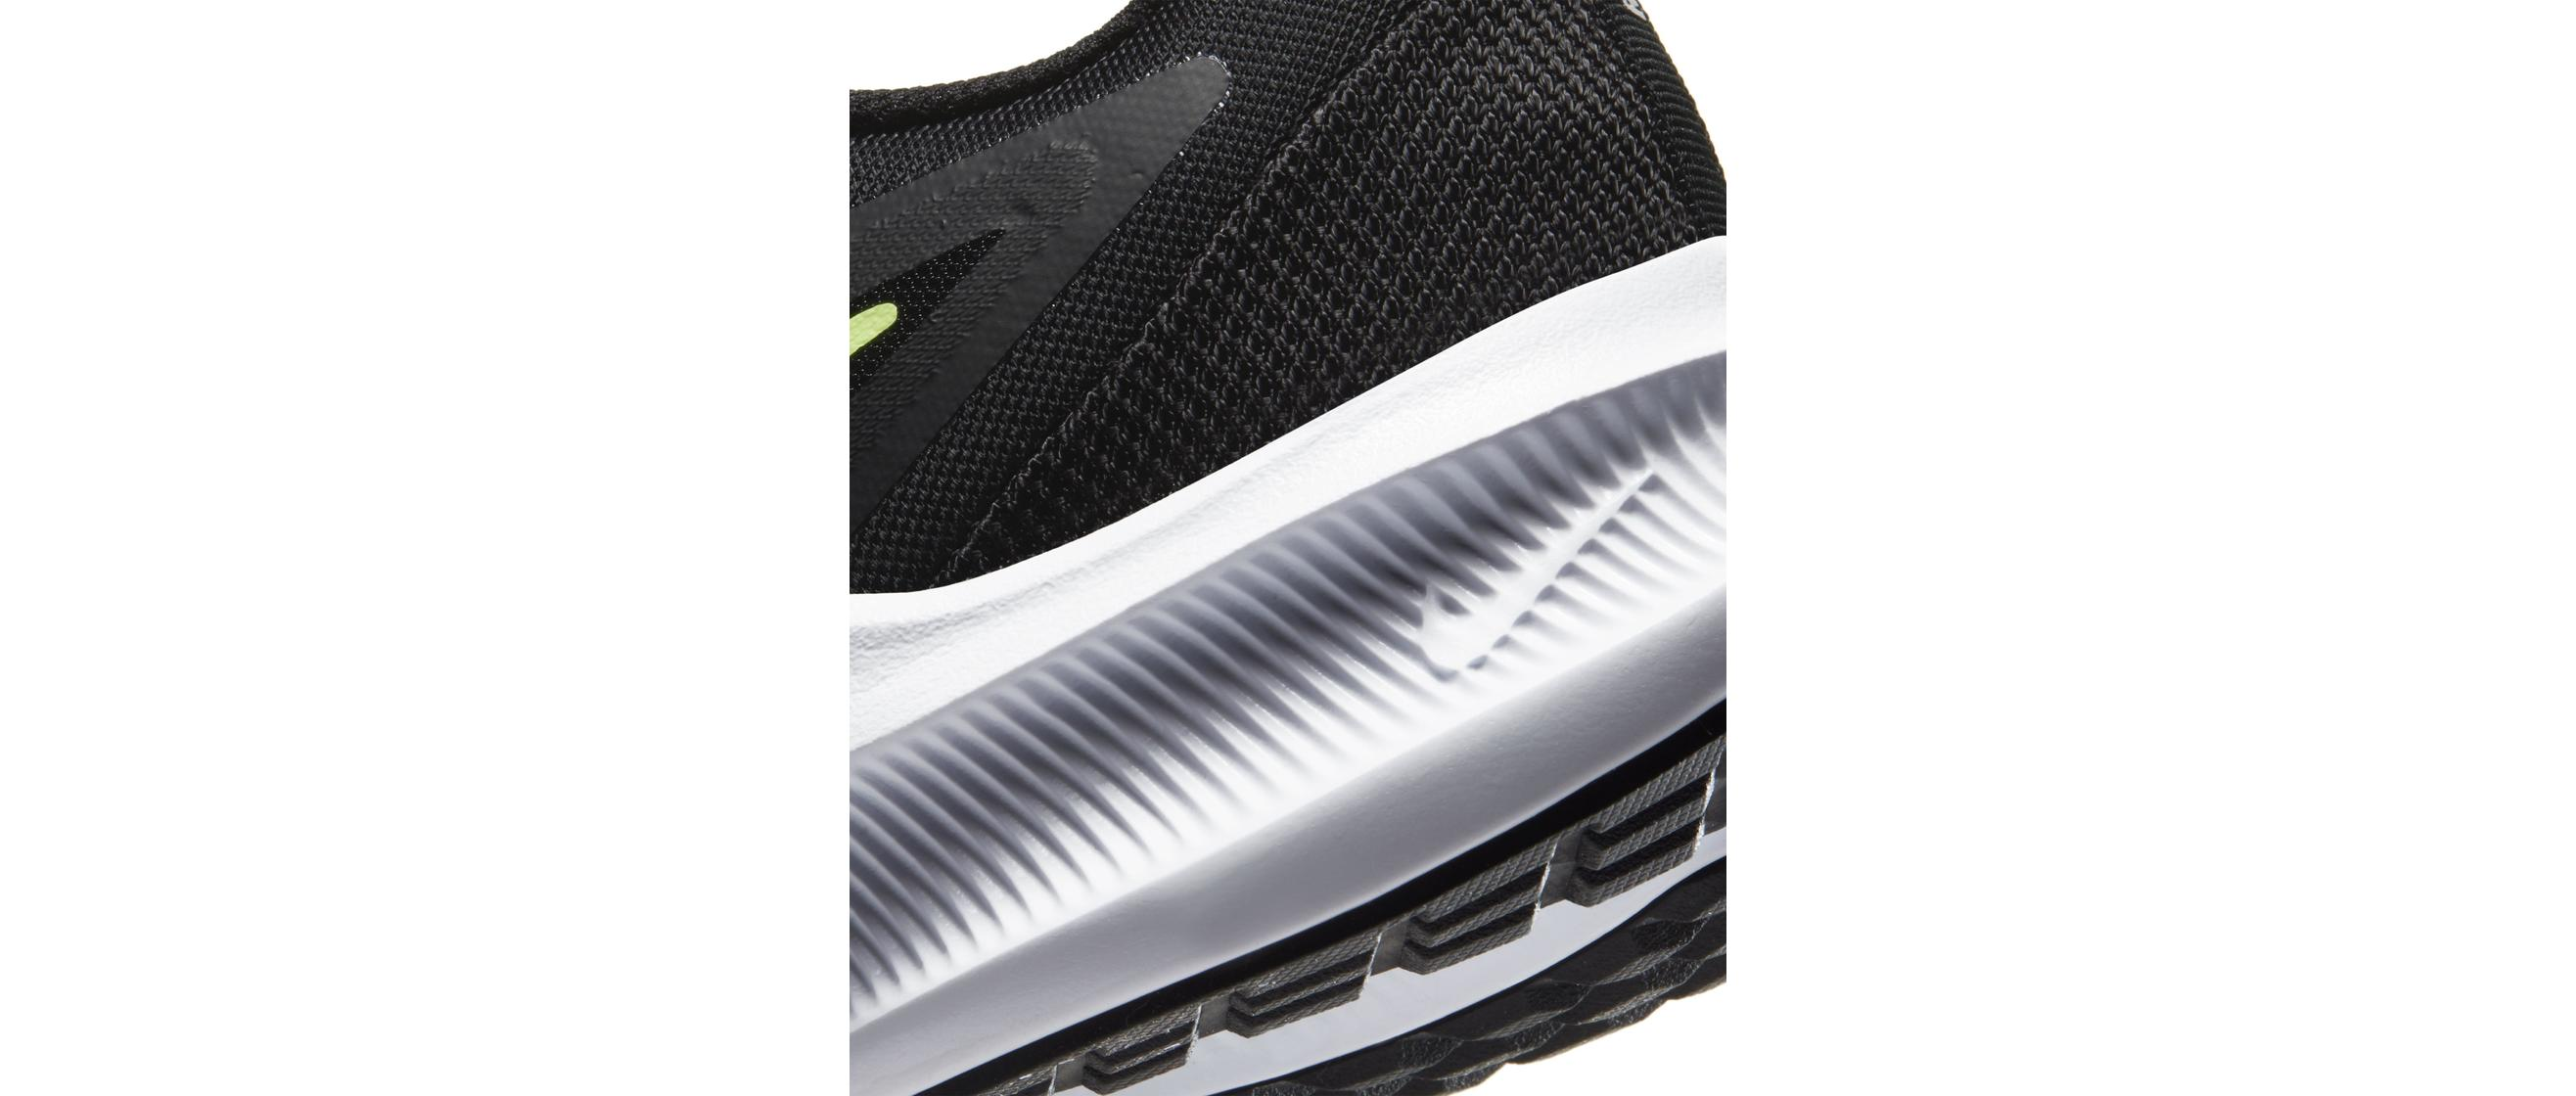 Nike Downshifter 10 Black/University Gold/White/Volt Glow